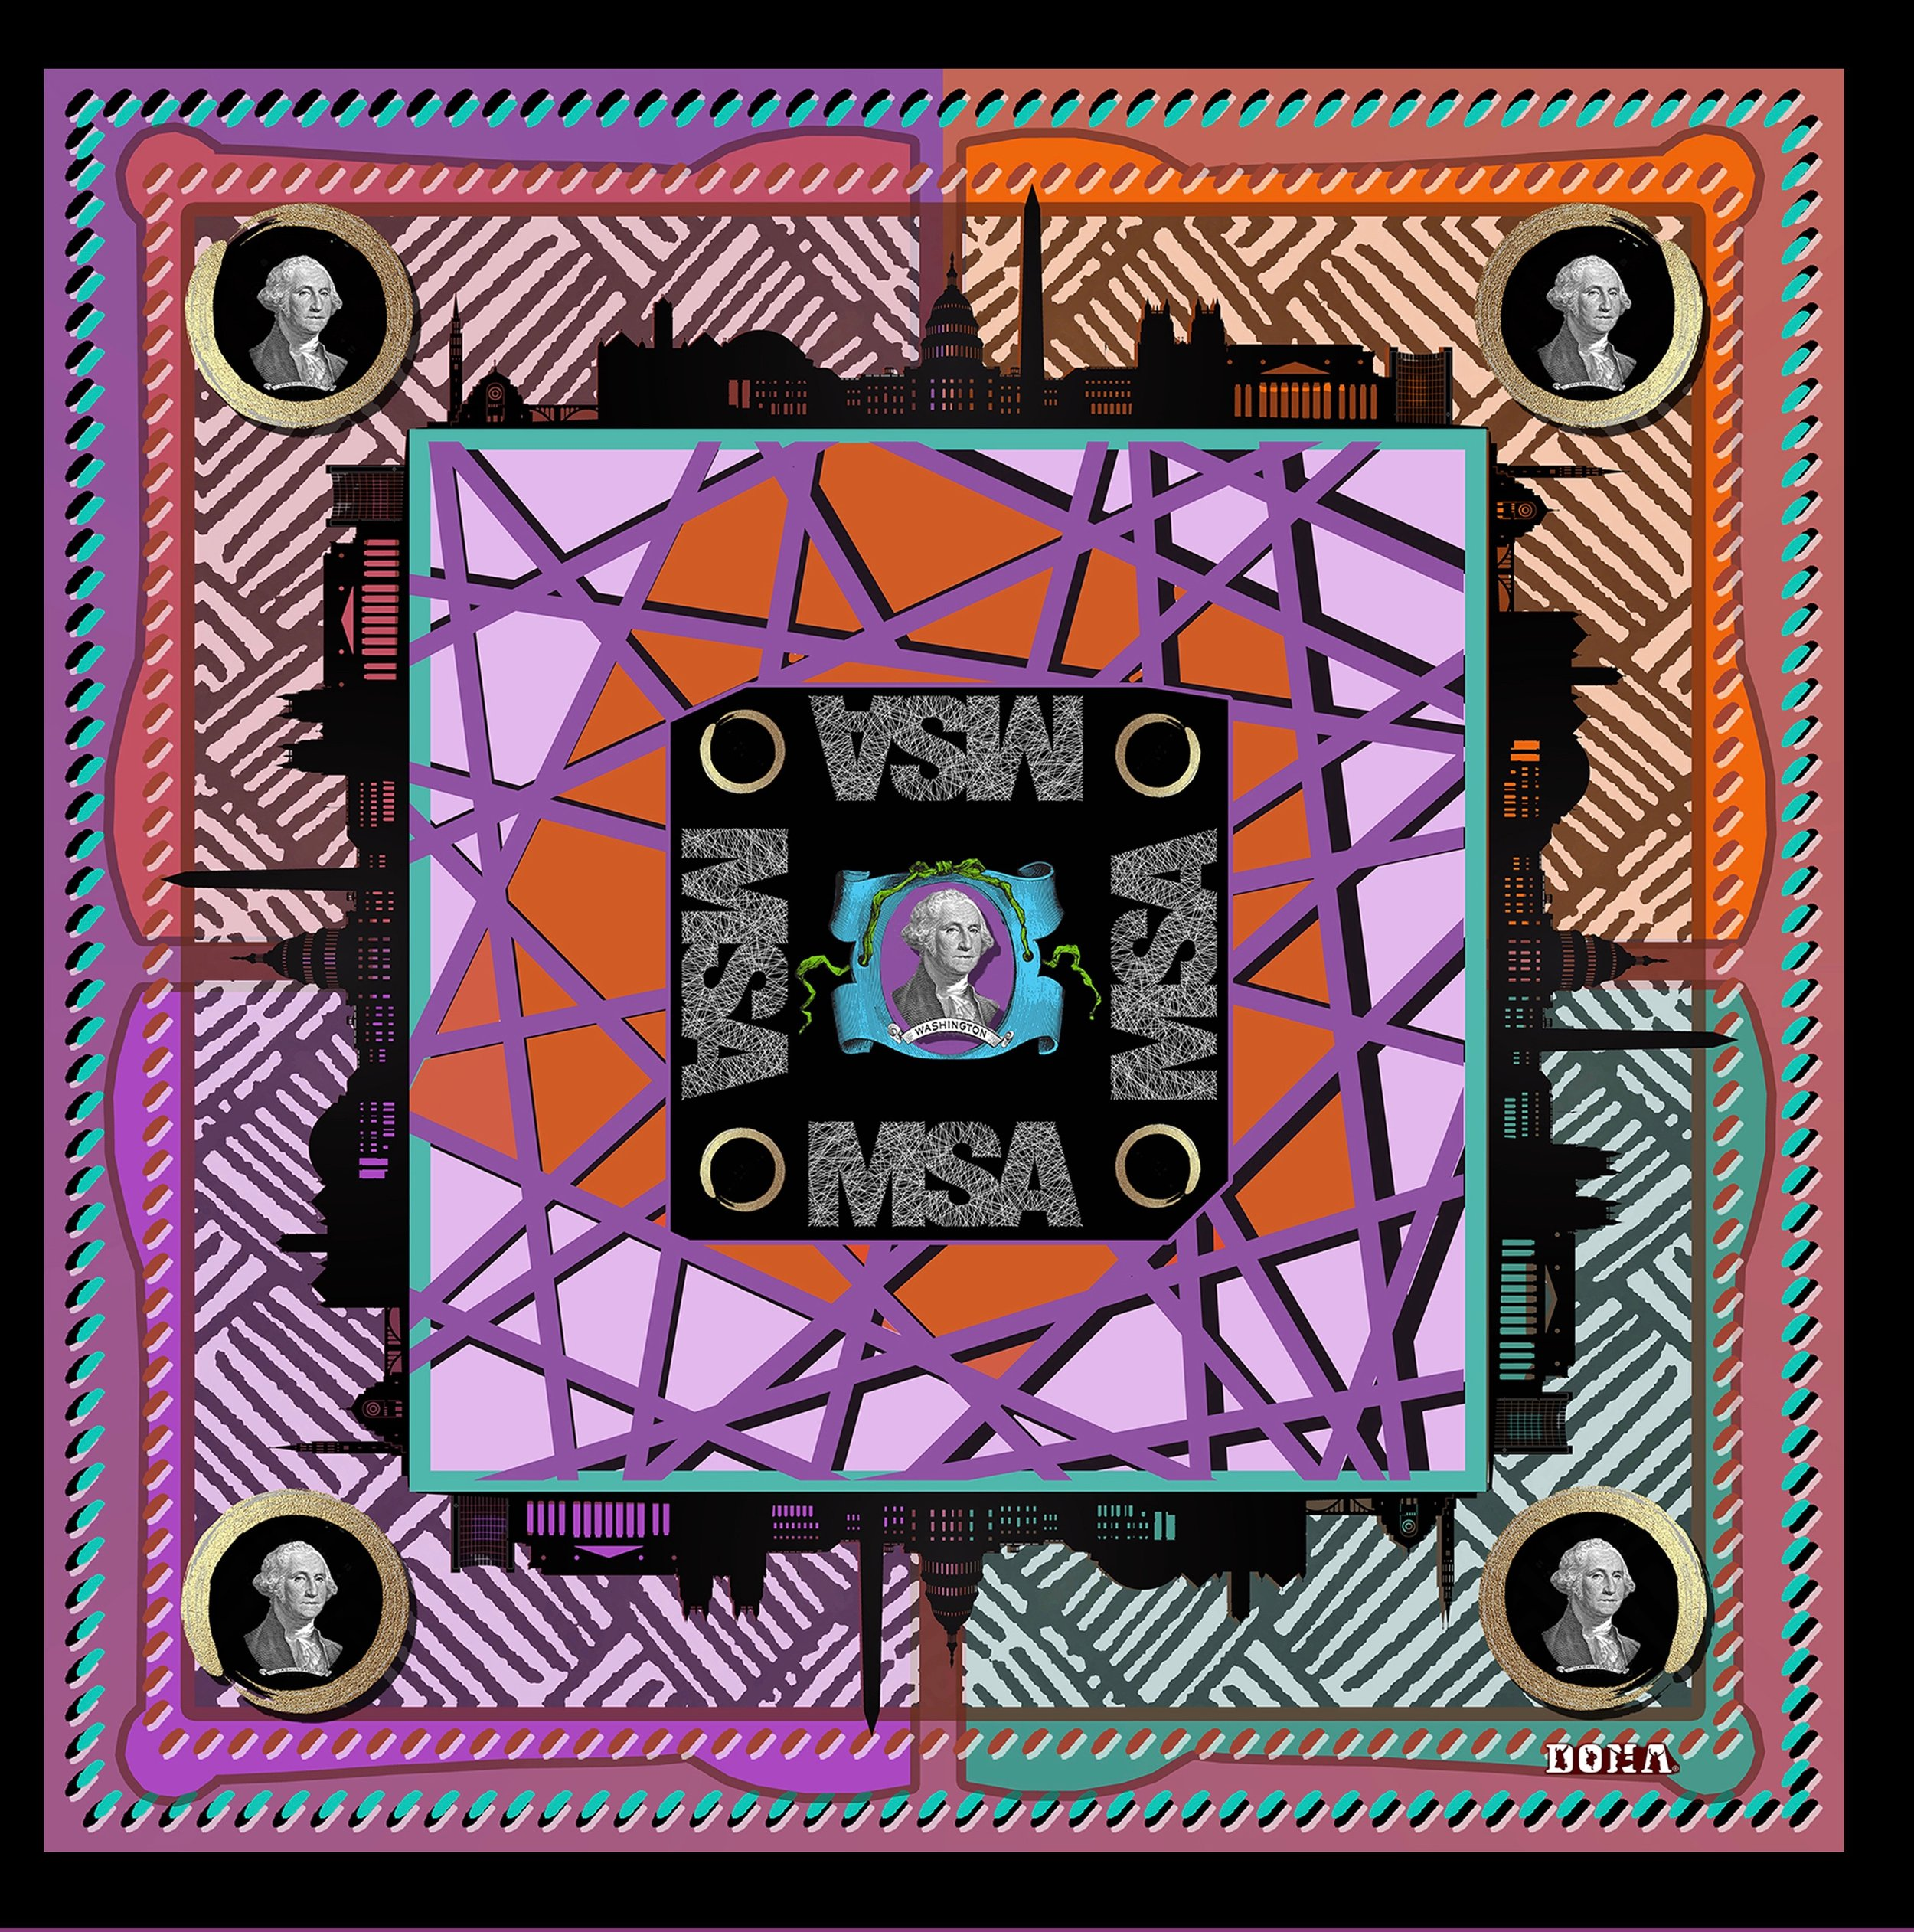 MSA | Museum Store Association | Promotional Scarf - DONA SCARVES is a proud vendor member of MSA and a vendor advisor 2017-2019 for the Florida Chapter of MSA | The Museum Store Association is an International organization with a mission of advancing the nonprofit retail industry and the success of the professionals engaged in it by encouraging high standards of knowledge and professionalism MSA helps nonprofit retail professionals better serve their institutions and the public.